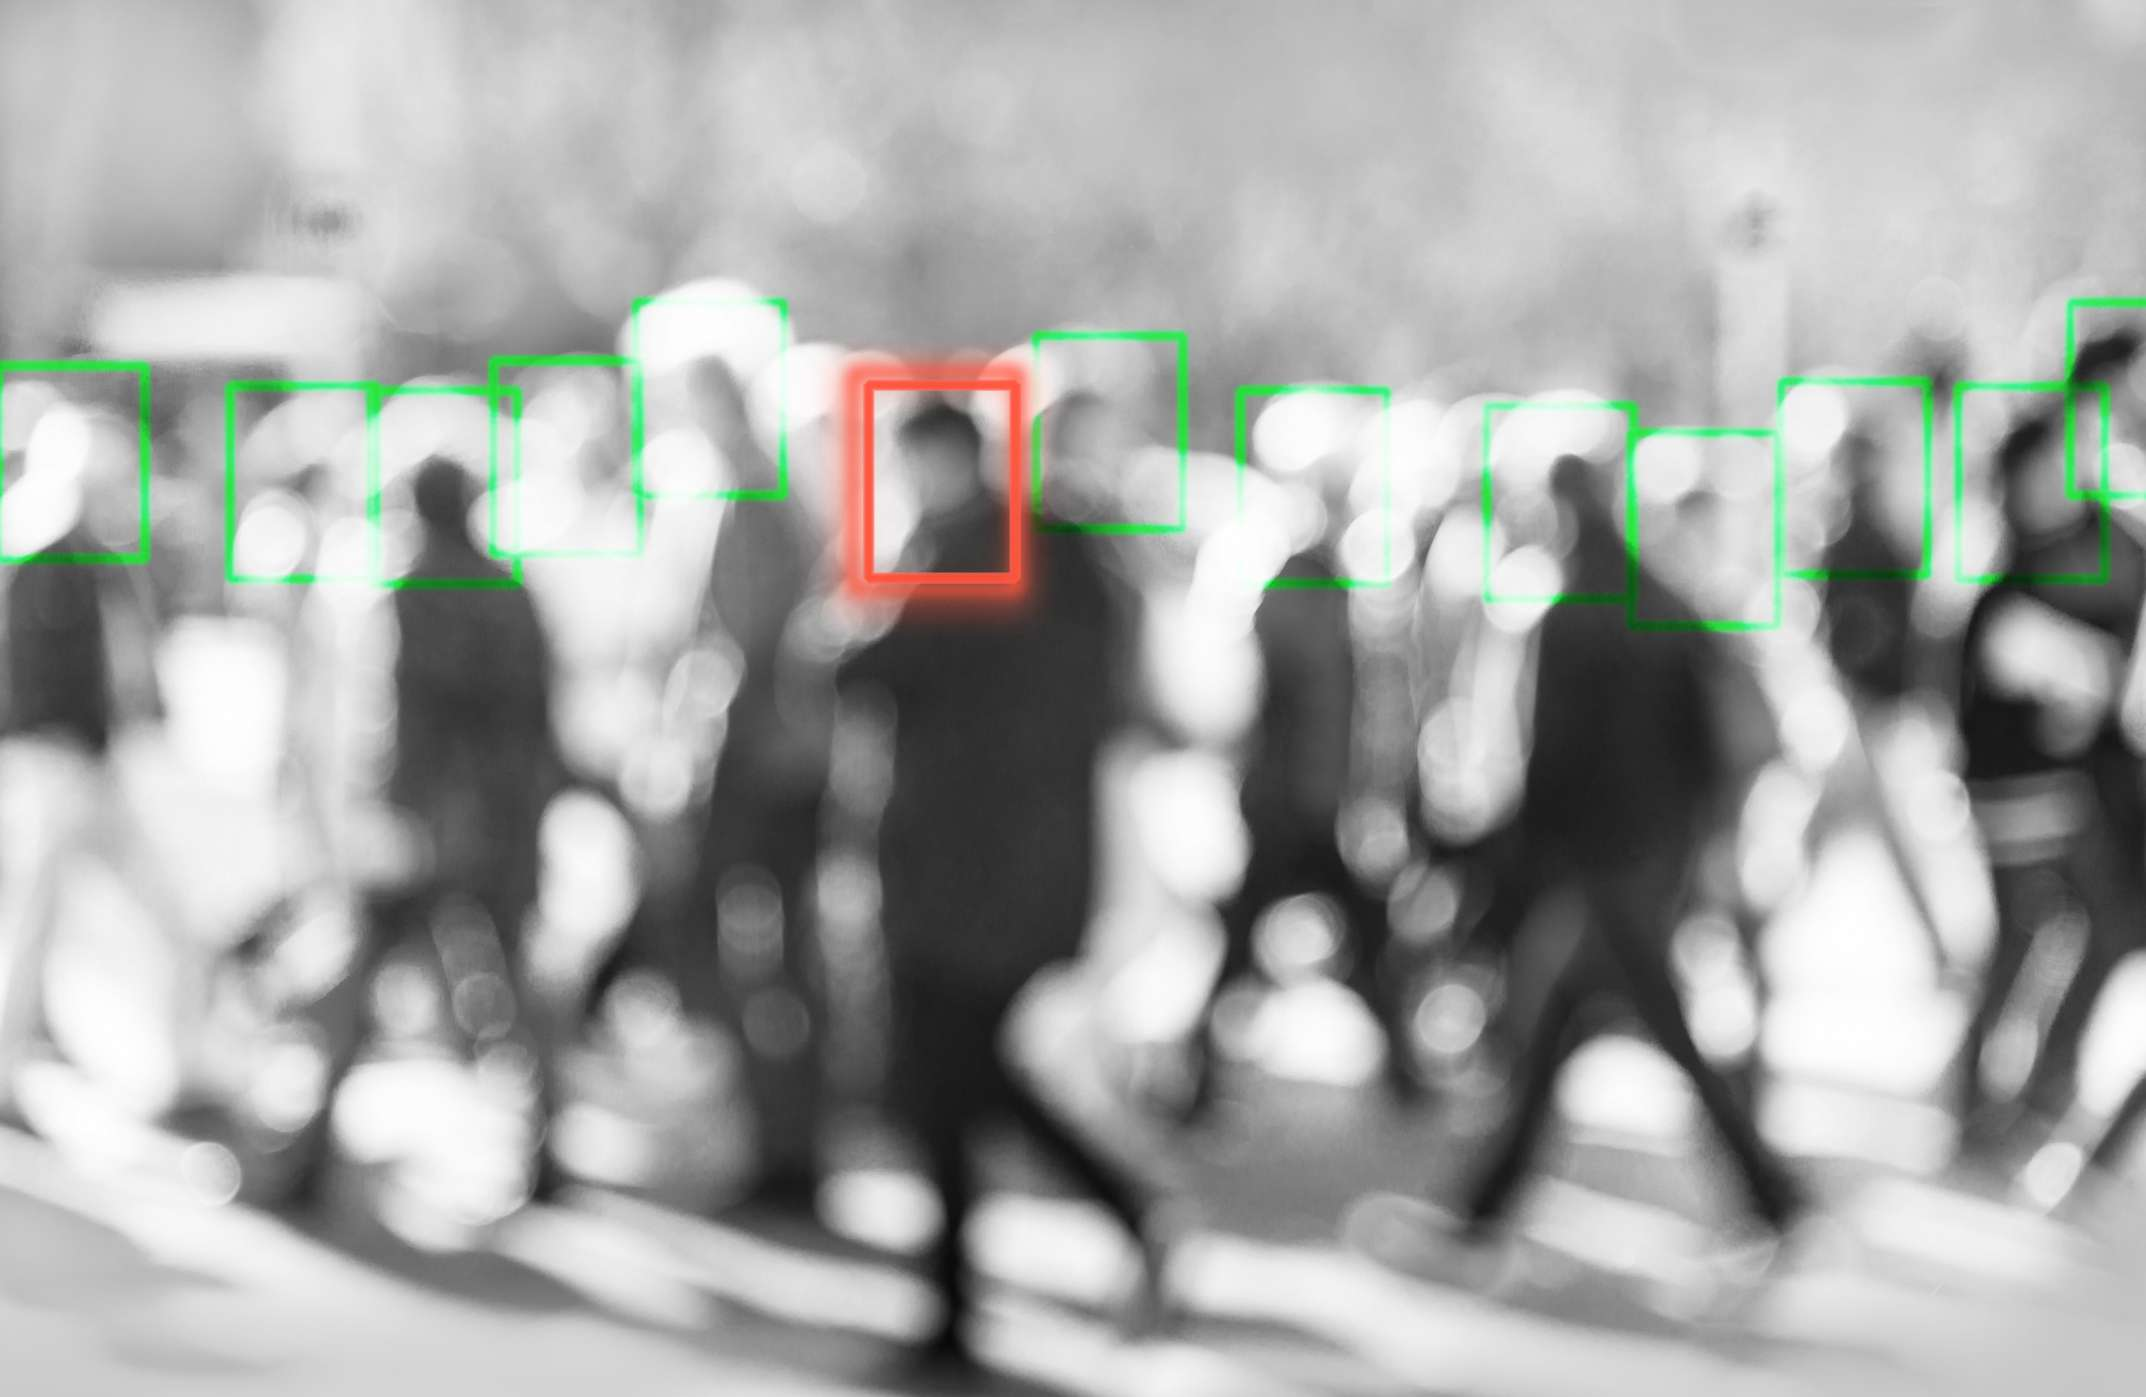 Tracking people in a crowd with one person called out by a red outline.